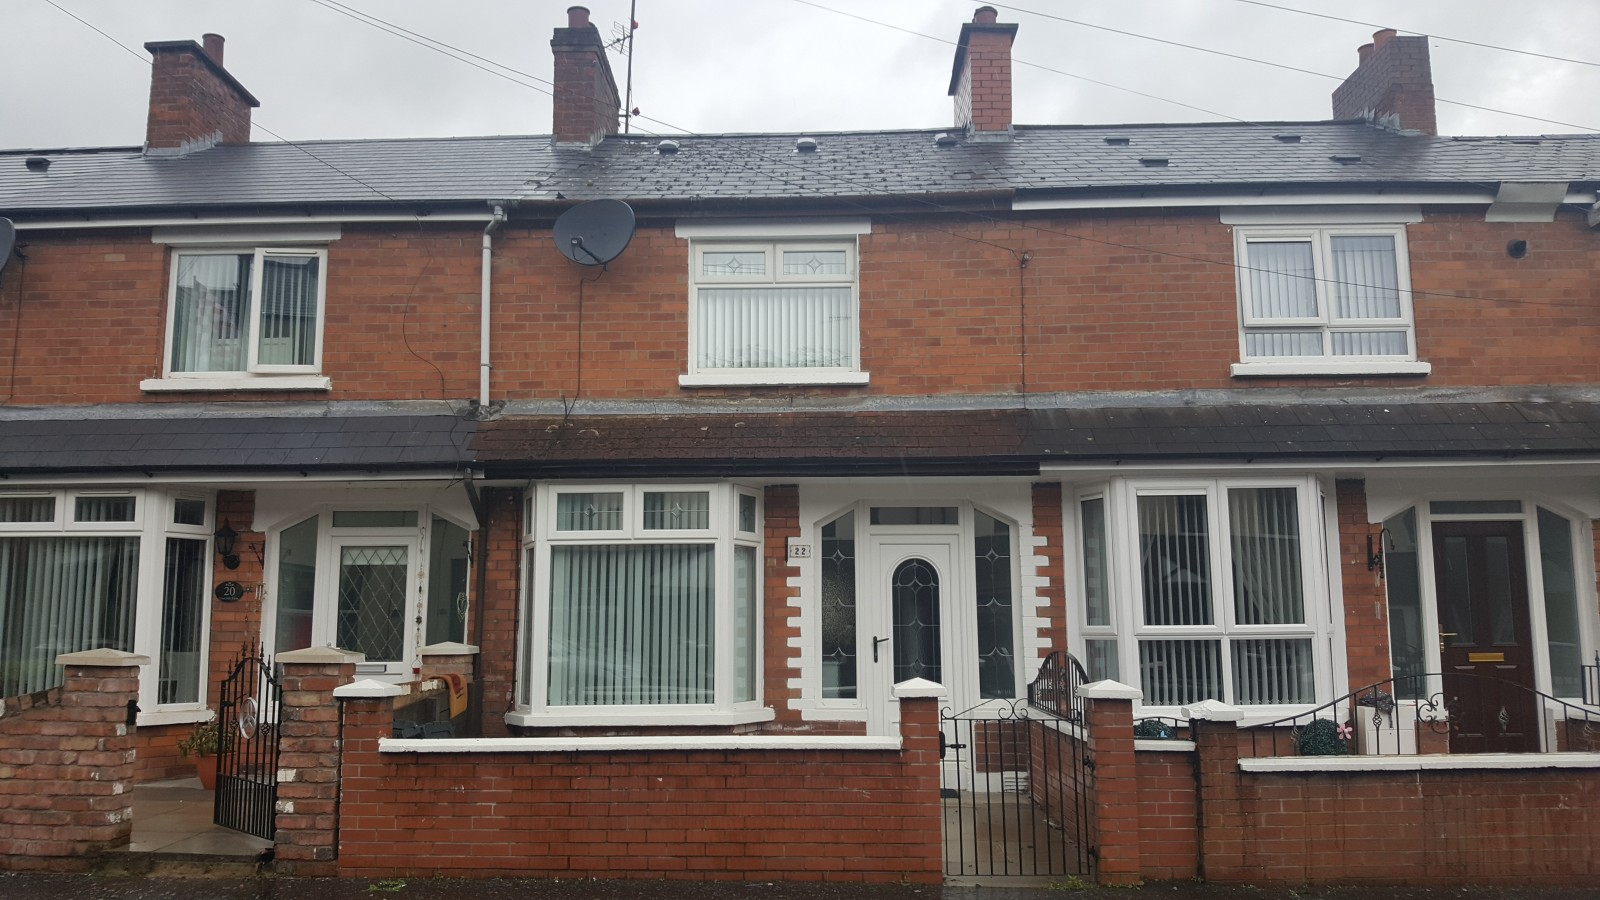 22 Cliftonville Street, Cliftonville Road, North Belfast, BT14 6LP